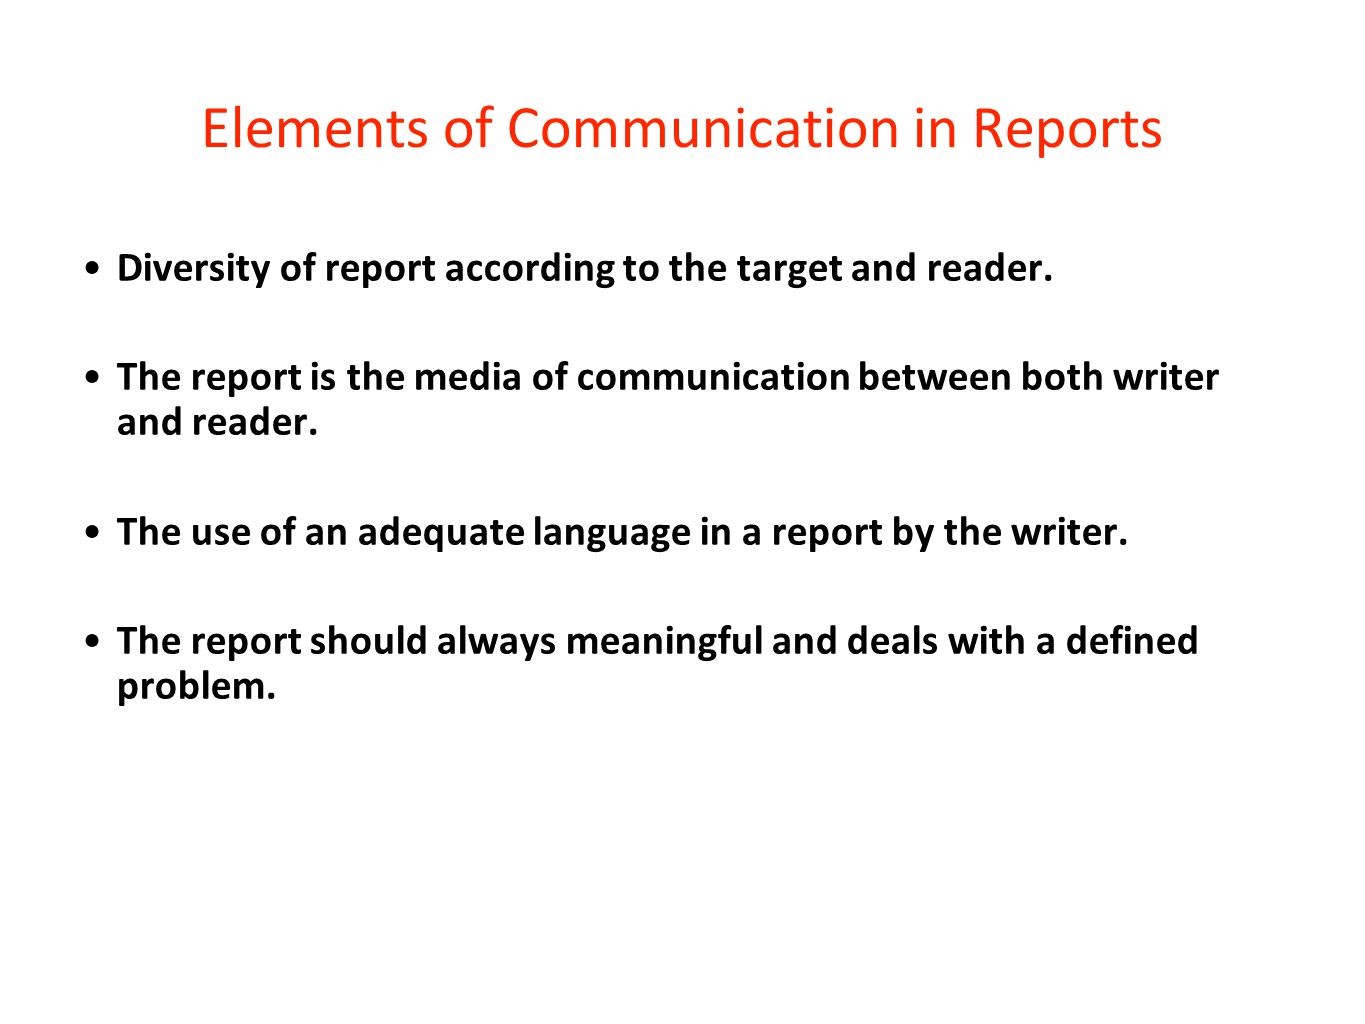 Elements of Communication in Reports